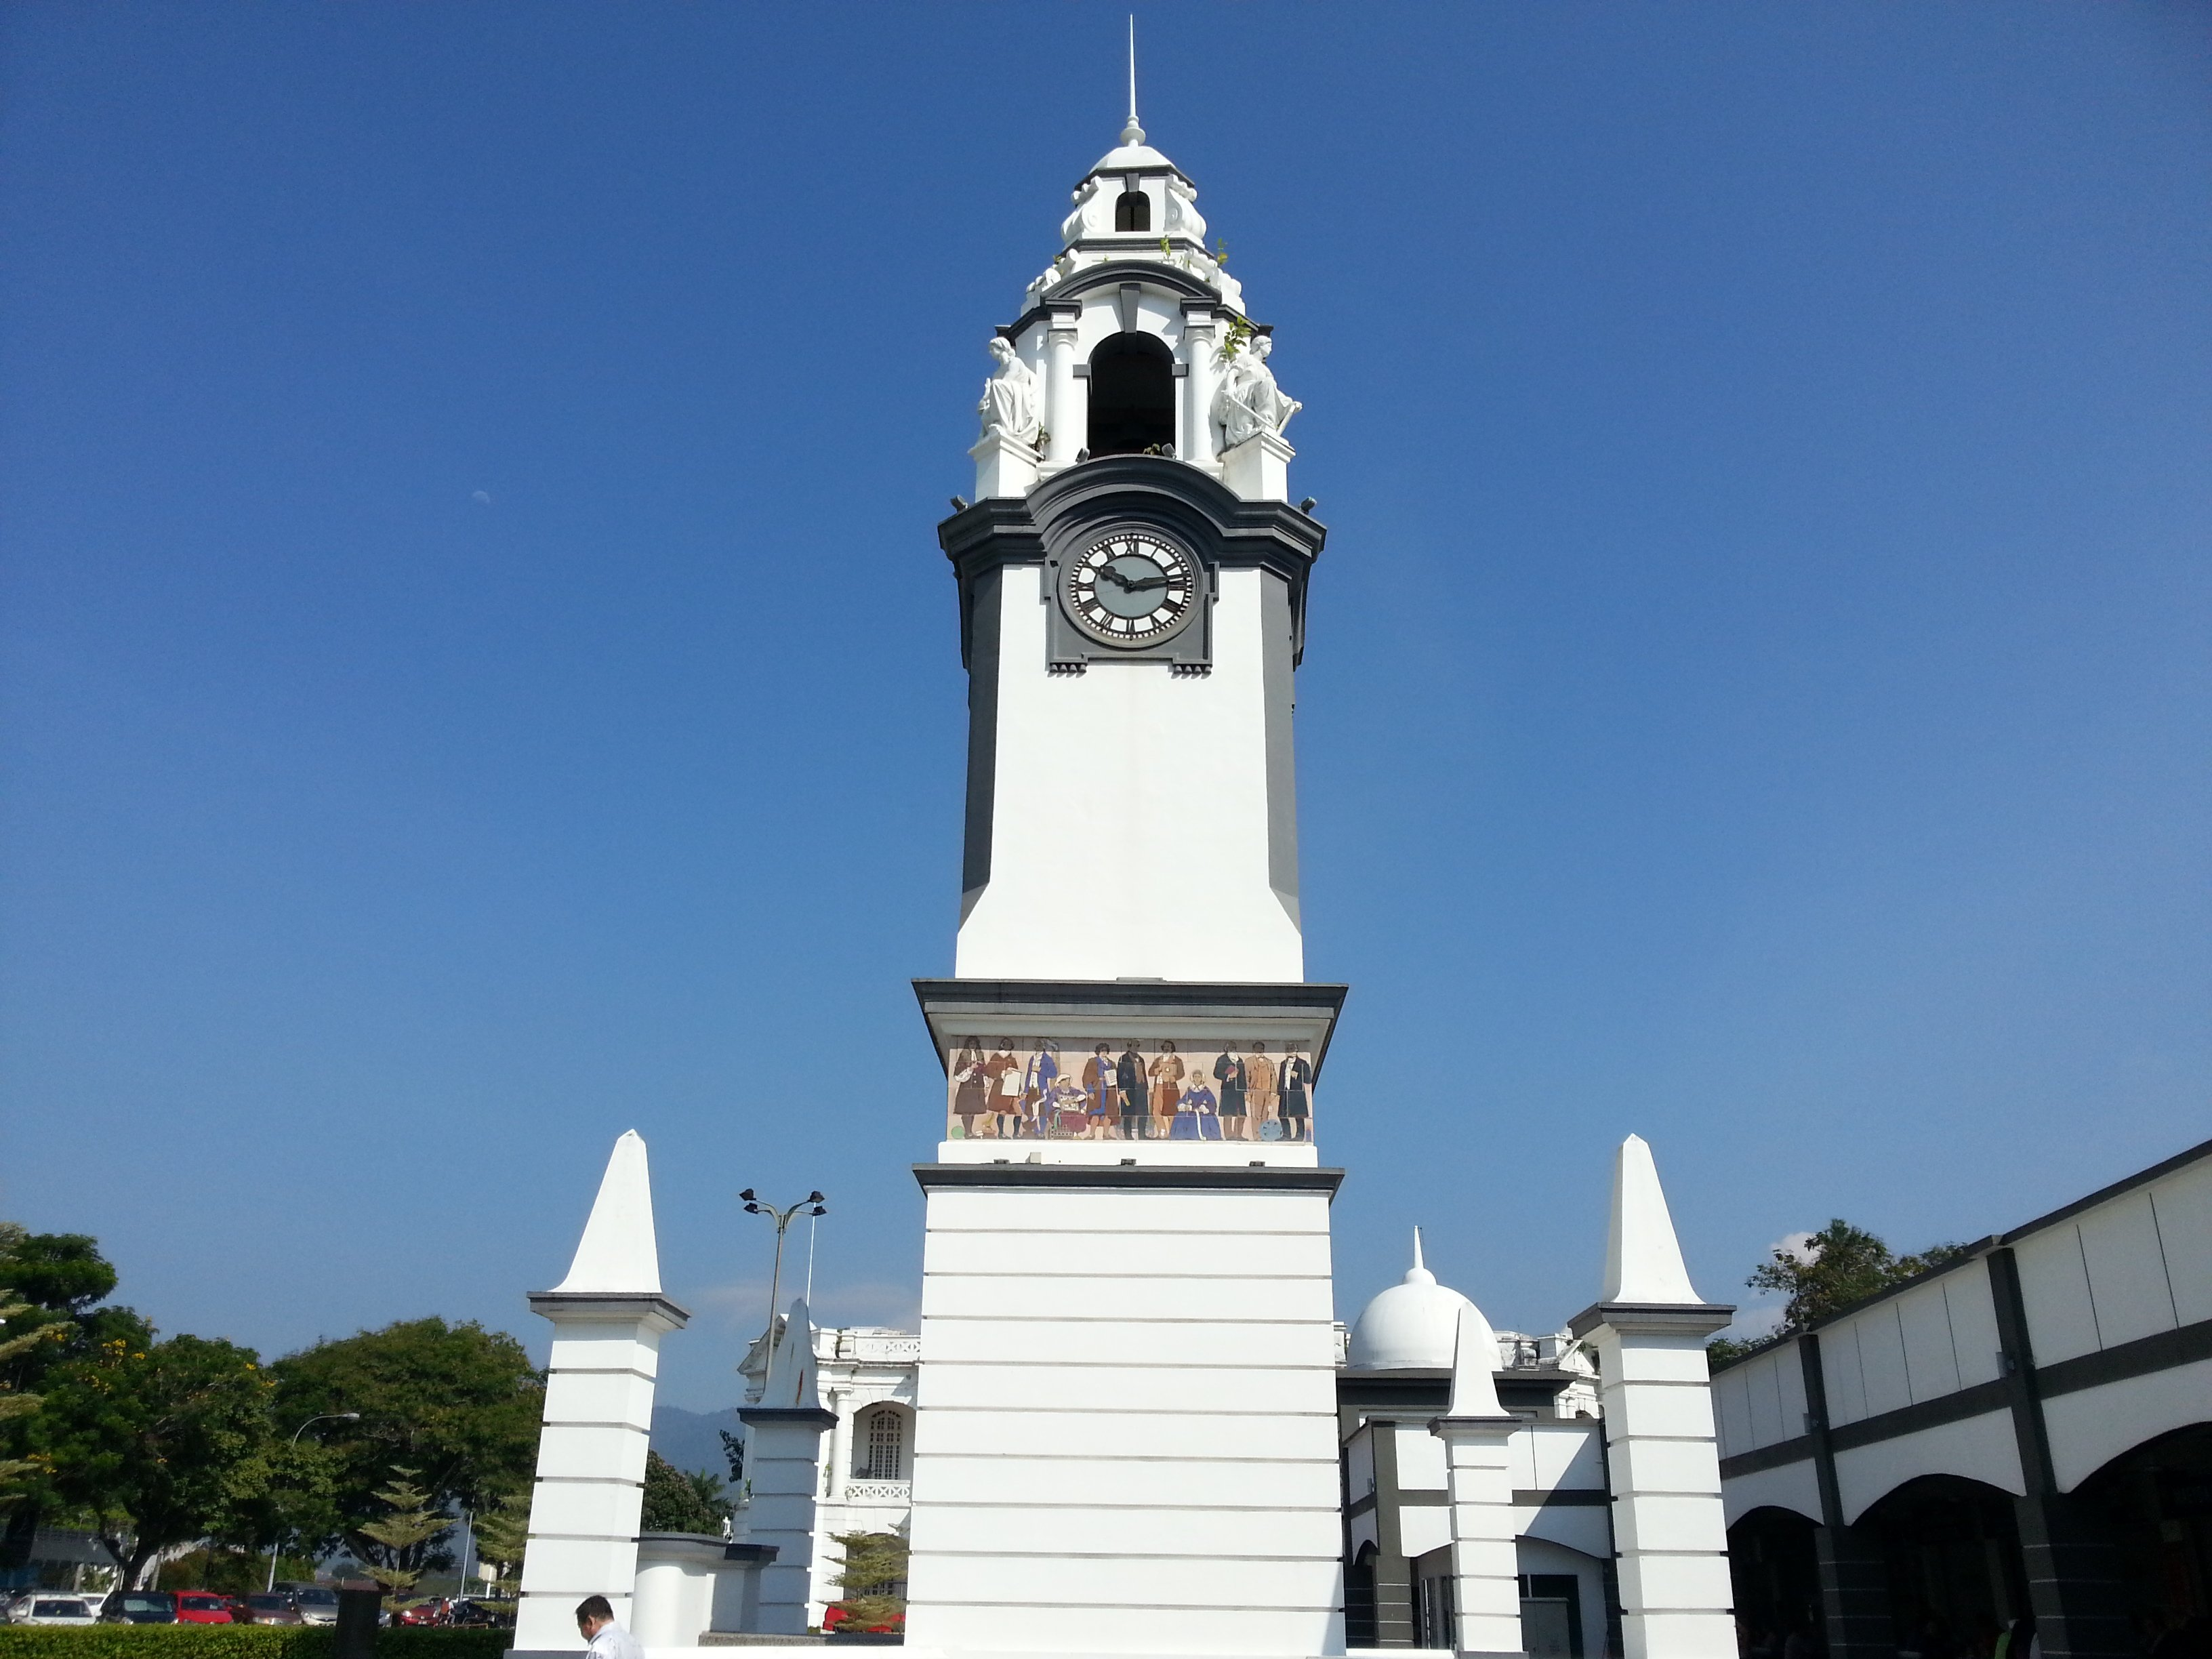 Birch Memorial Clock Tower in Ipoh